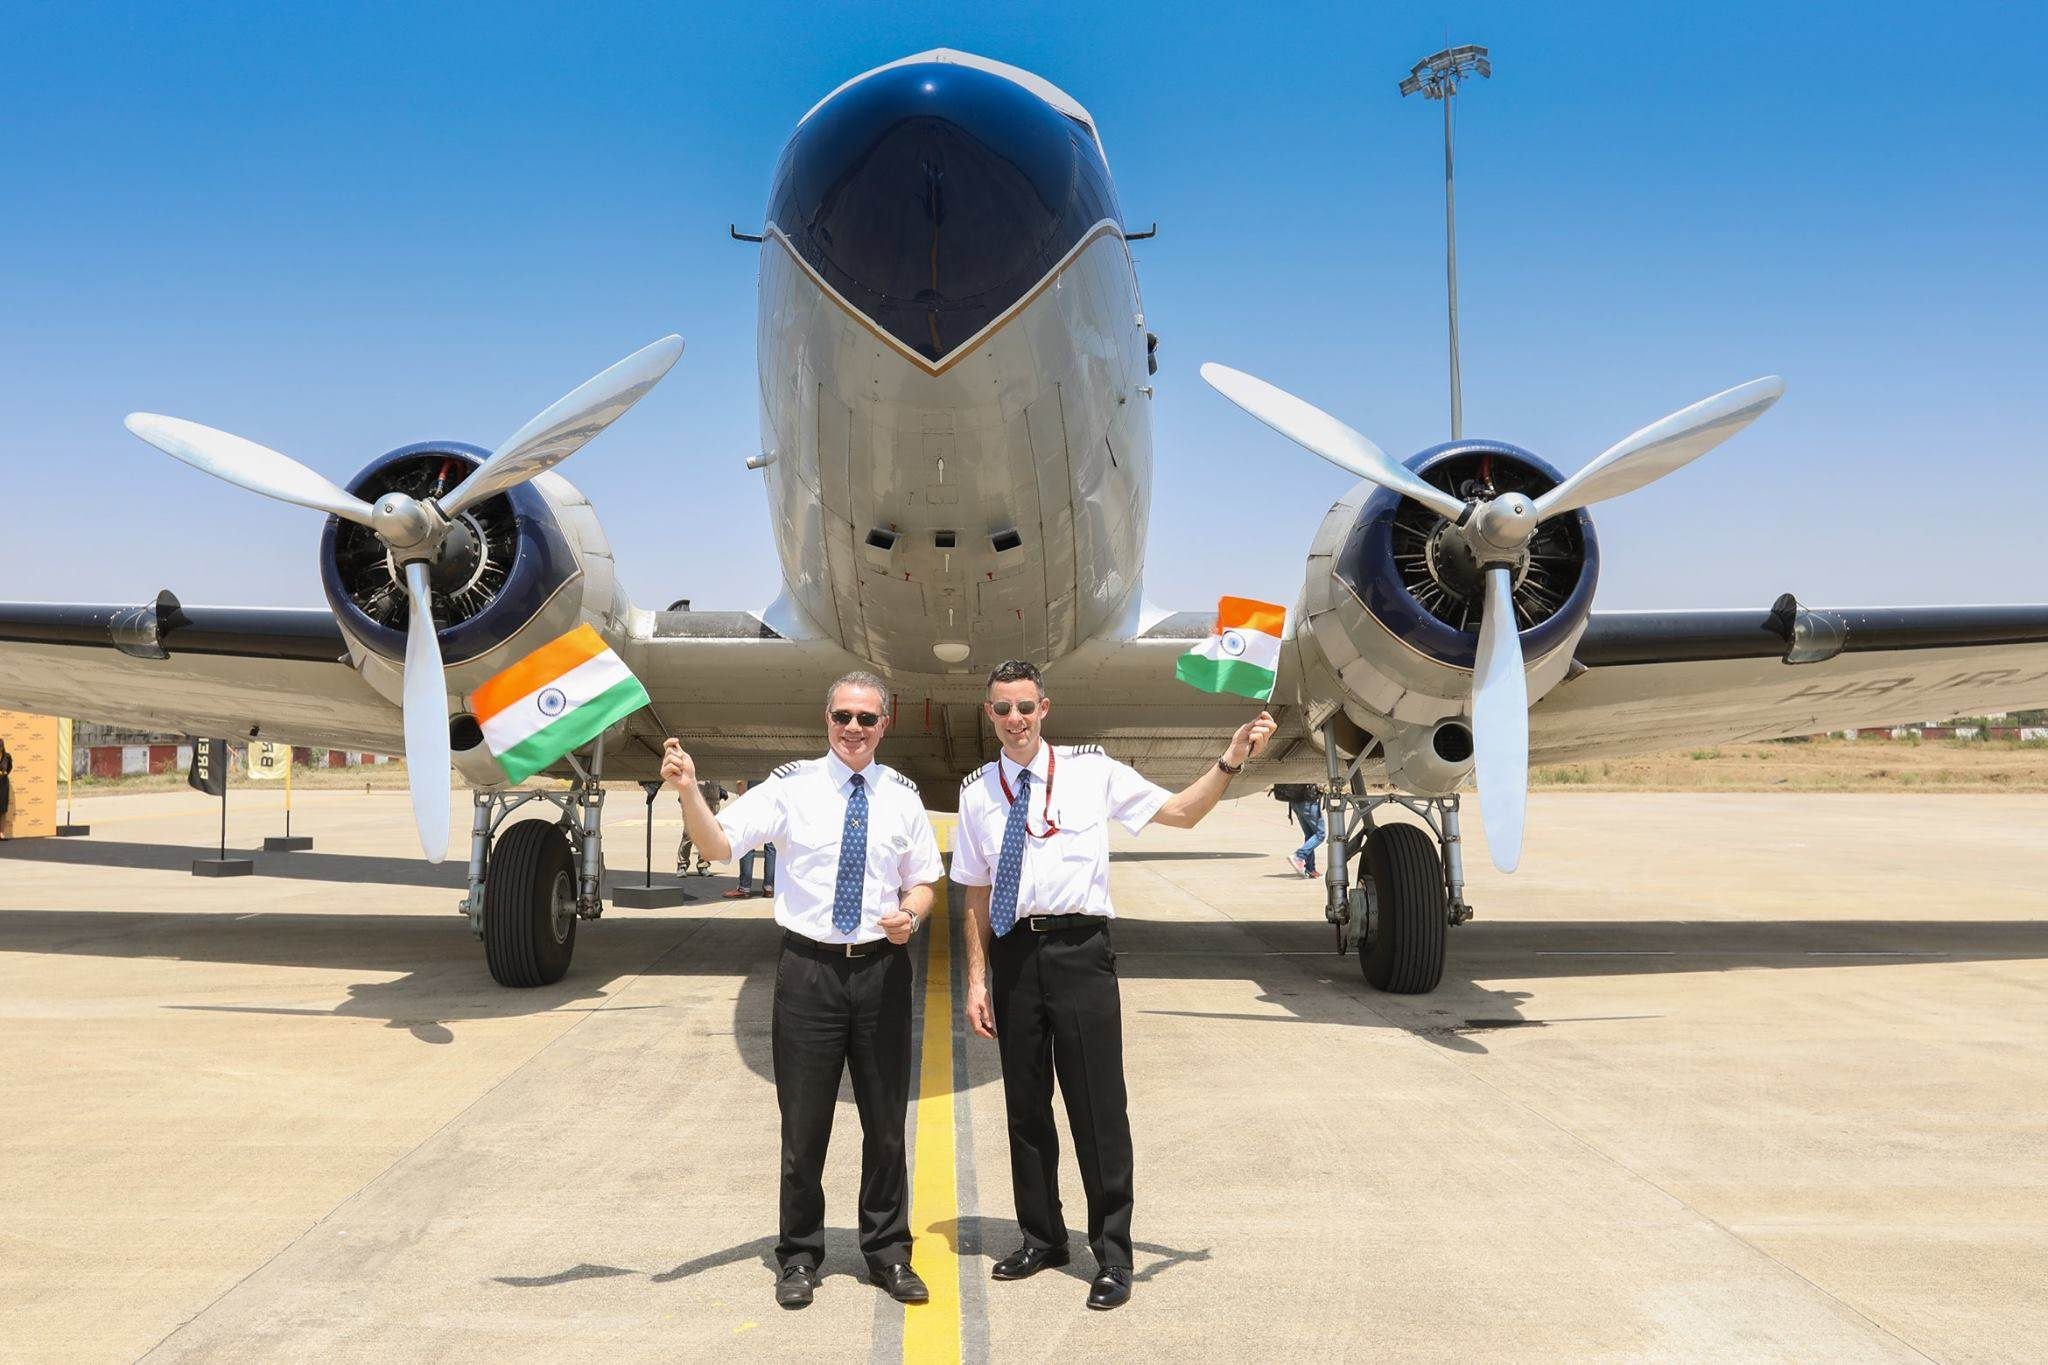 Flying on a 1940 Breitling DC-3 in India